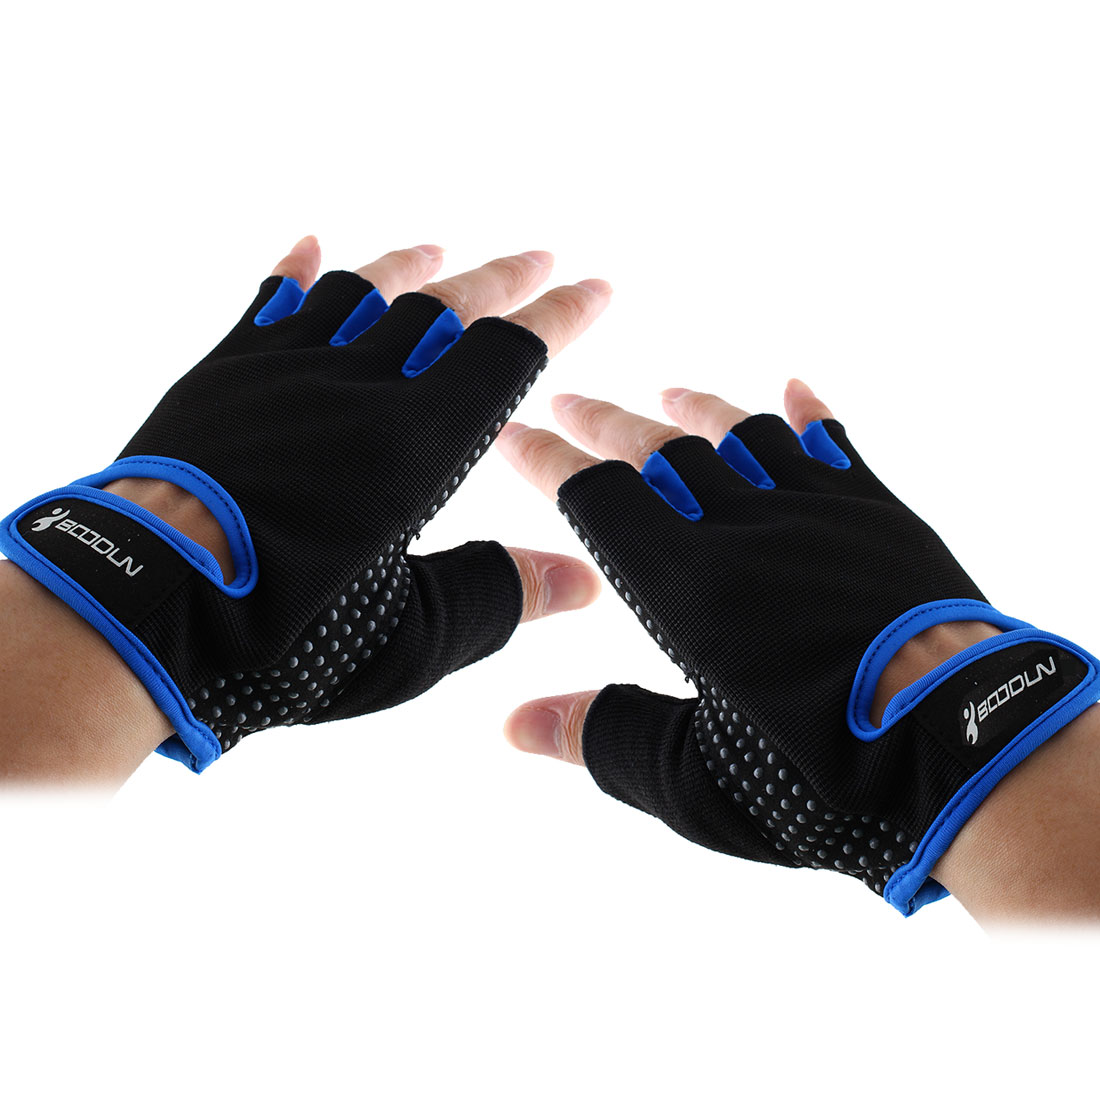 BOODUN Authorized Adult Unisex Spandex Adjustable Sports Training Workout Mittens Fitness Gloves Blue L Pair